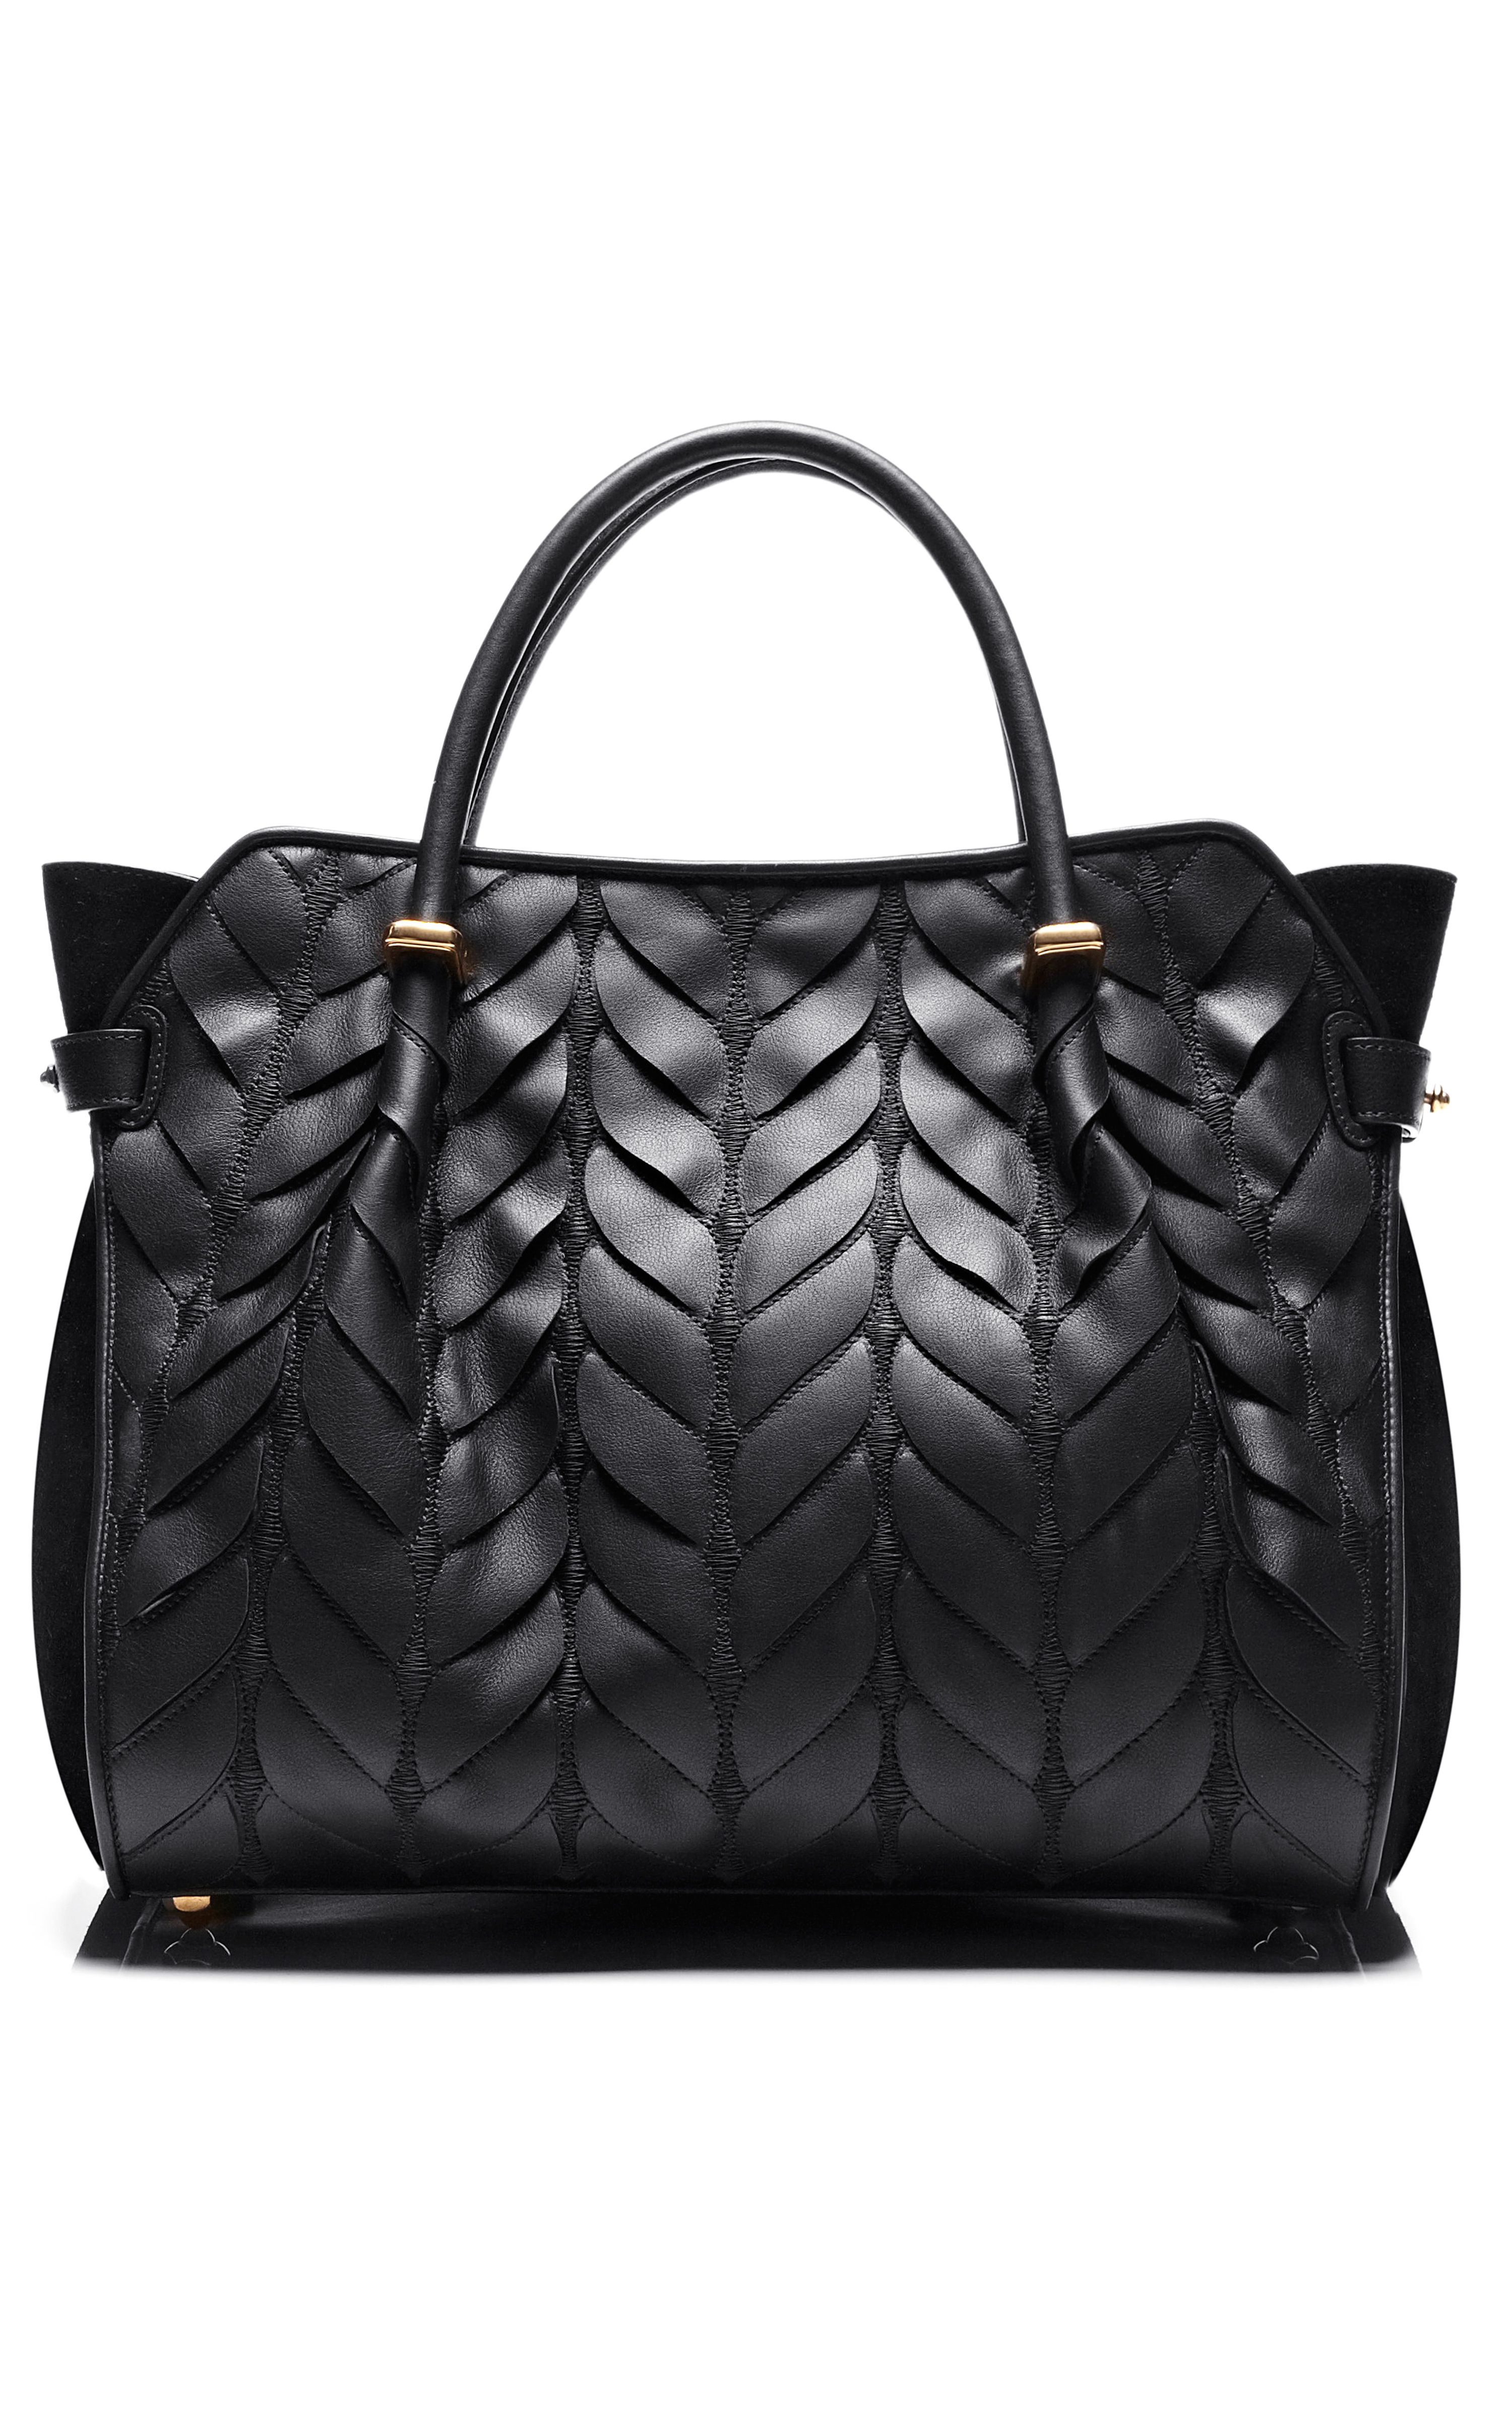 Clearance Online Fake Reliable Elide tote - Black Nina Ricci Sale Good Selling Manchester Great Sale For Sale vSwZQ